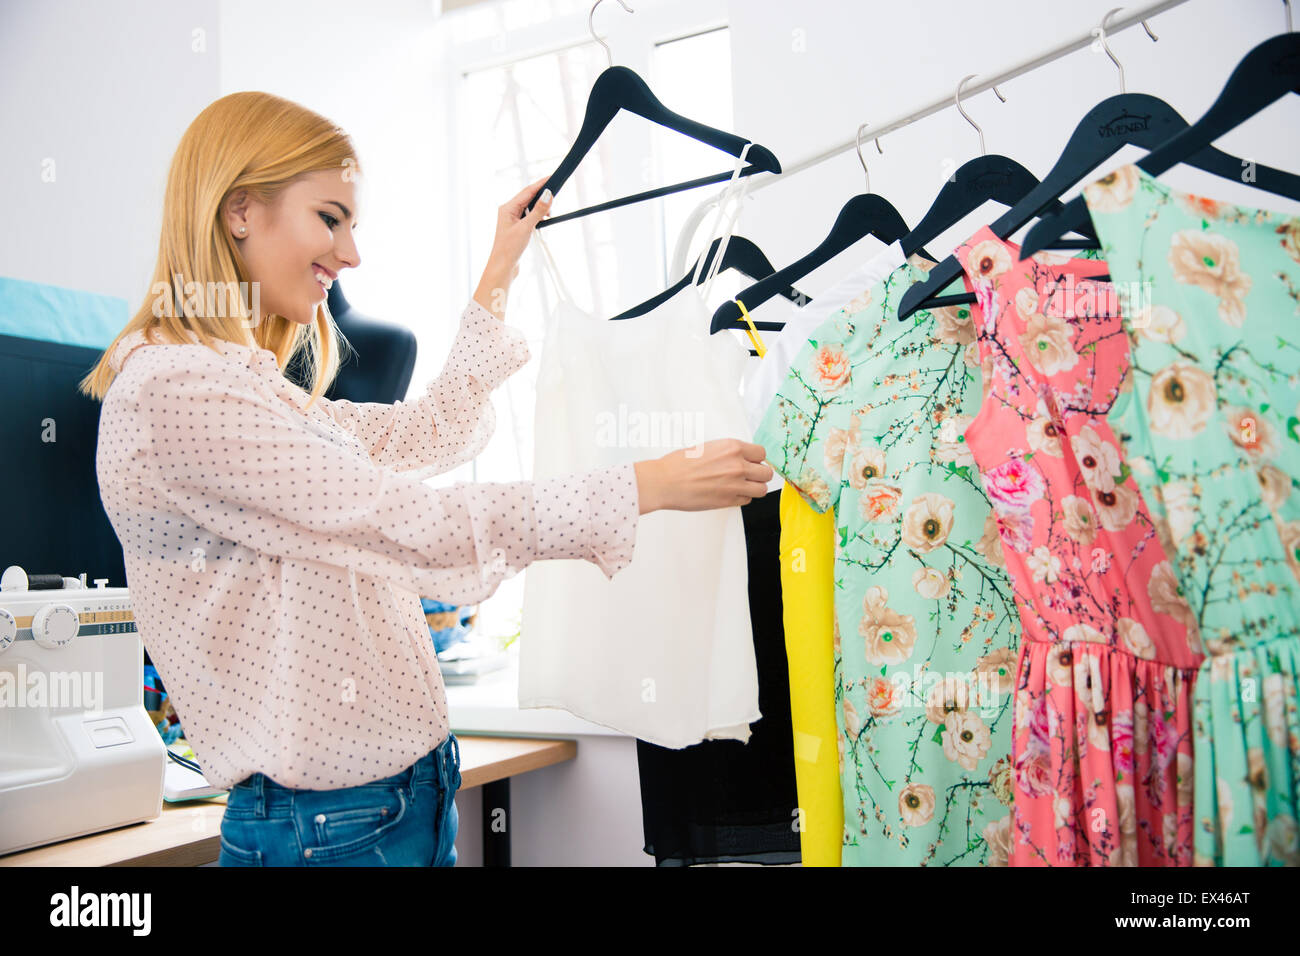 Smiling fashion designer looking on dresses in workshop - Stock Image